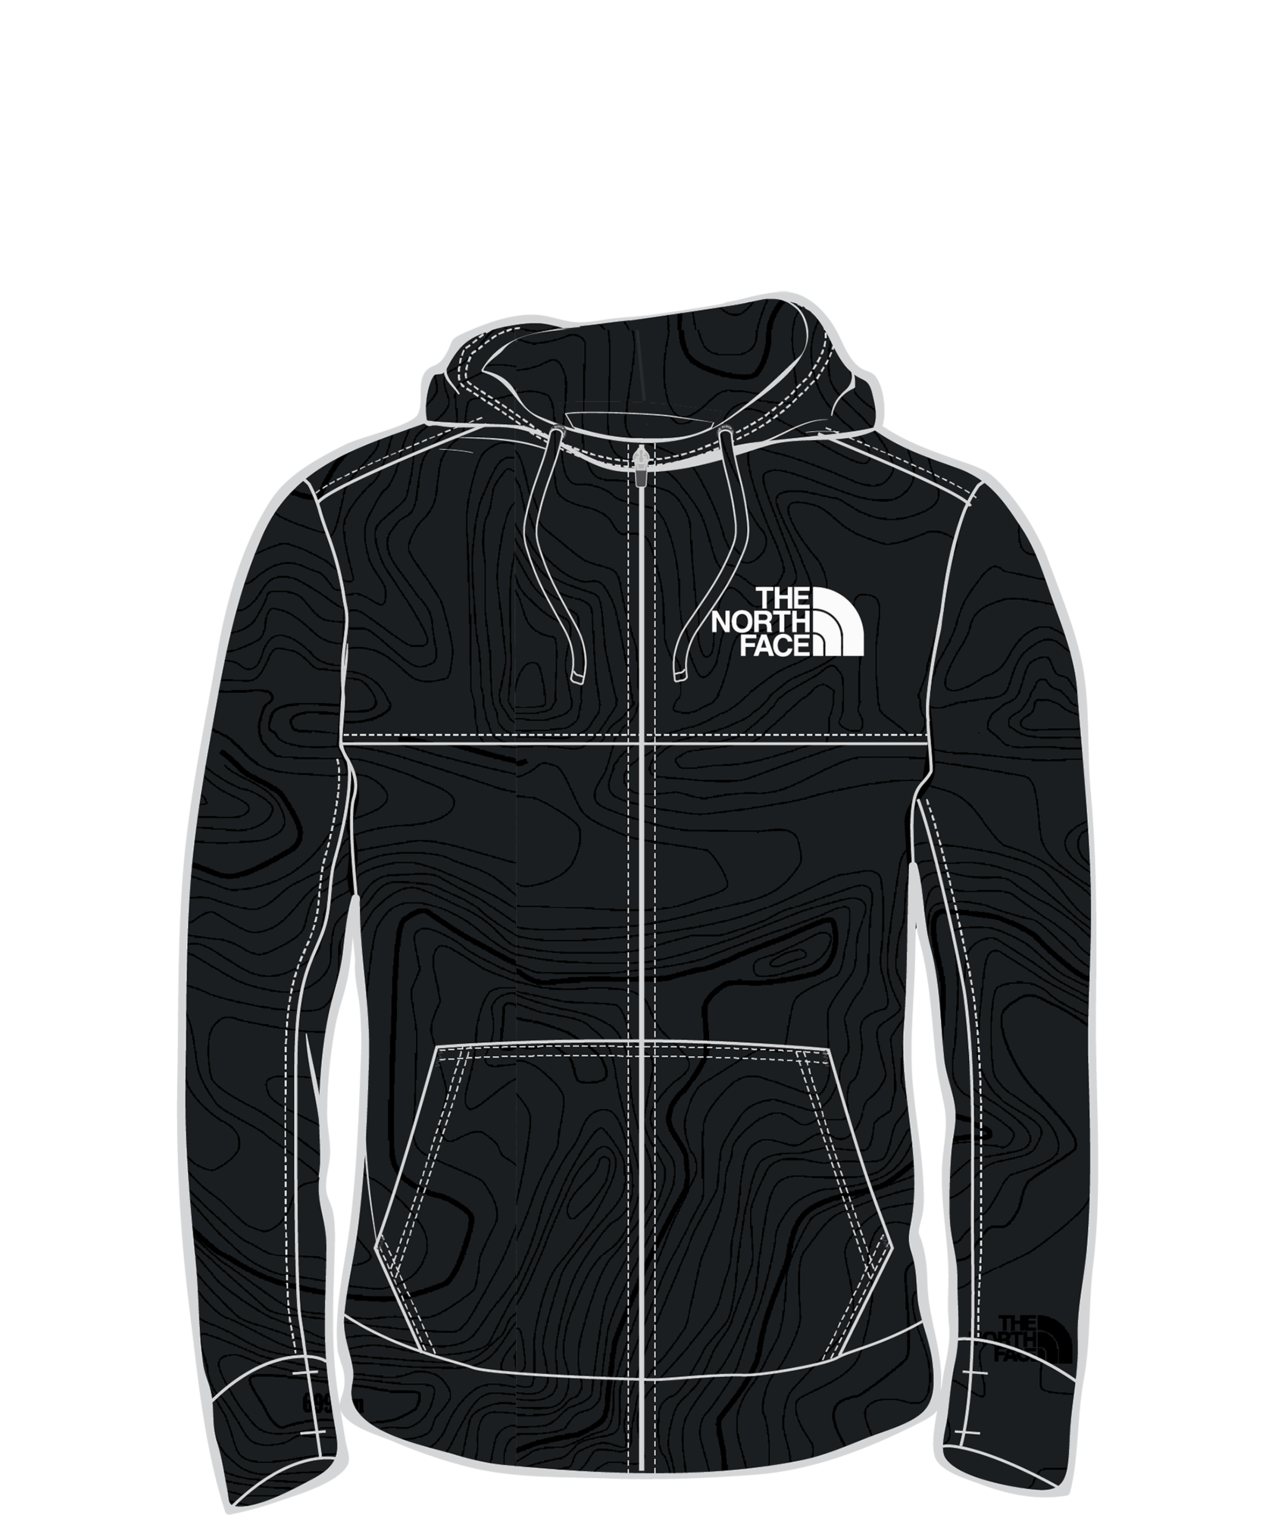 NF0A34YV-UF4 The North Face Surgent Bloc Full Zip Hoodie 2.0 mens jacket front view black topo print